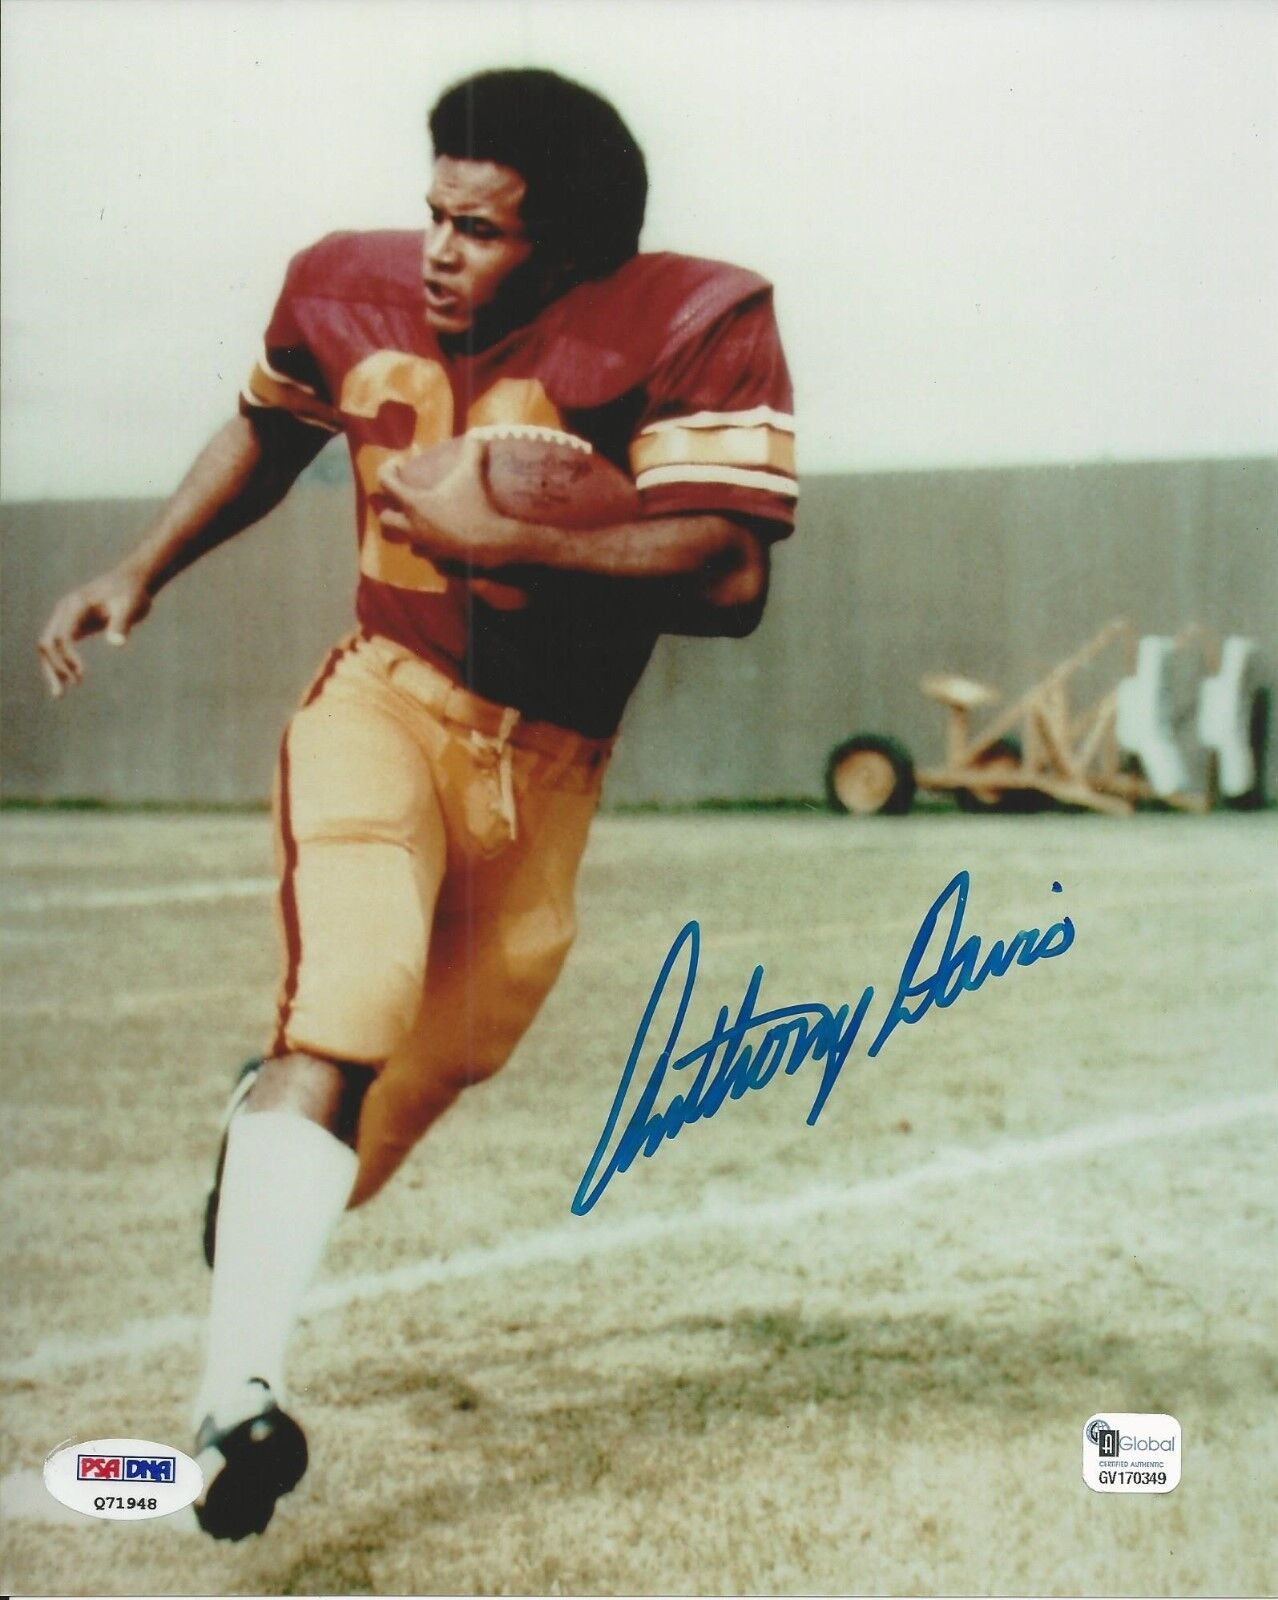 Anthony Davis Signed USC Trojans 8x10 Photo PSA/DNA #Q71948